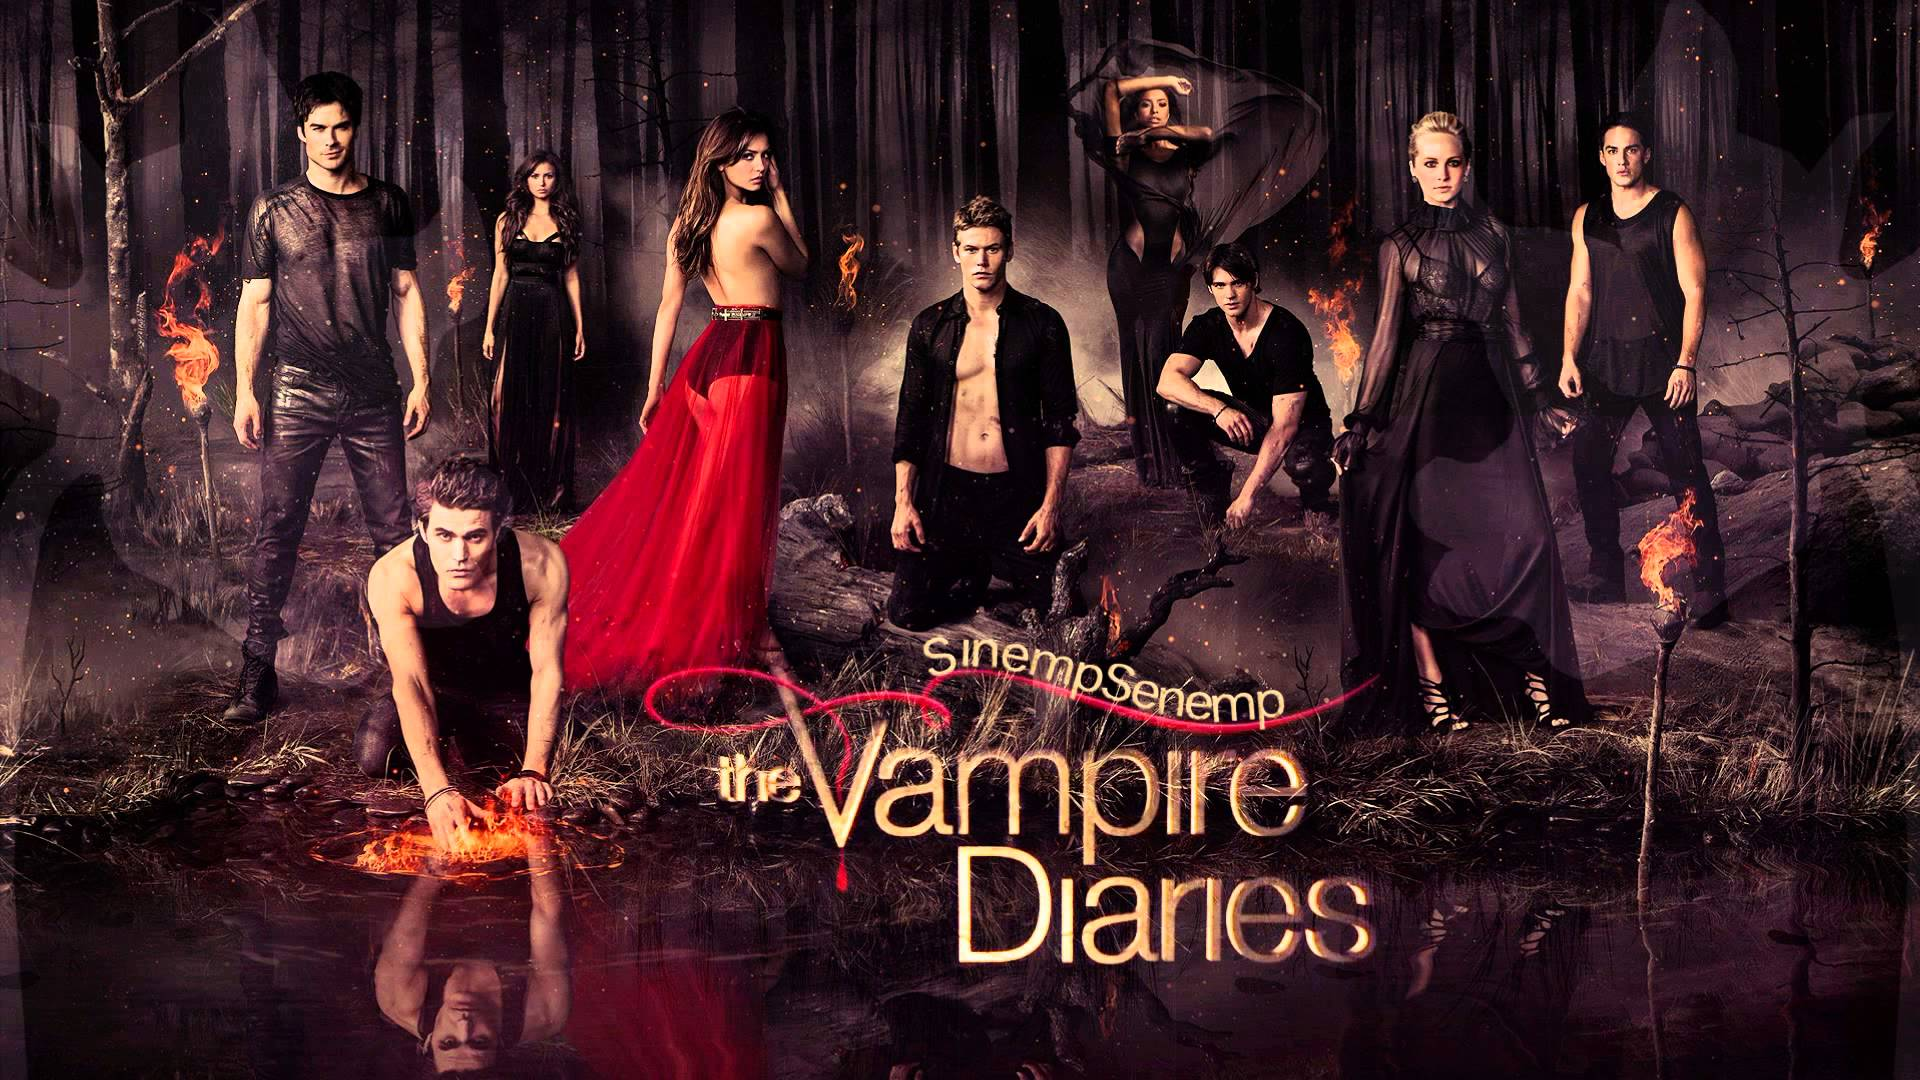 Wallpaper The Vampire Diaries: Vampire Diaries Wallpapers High Resolution And Quality